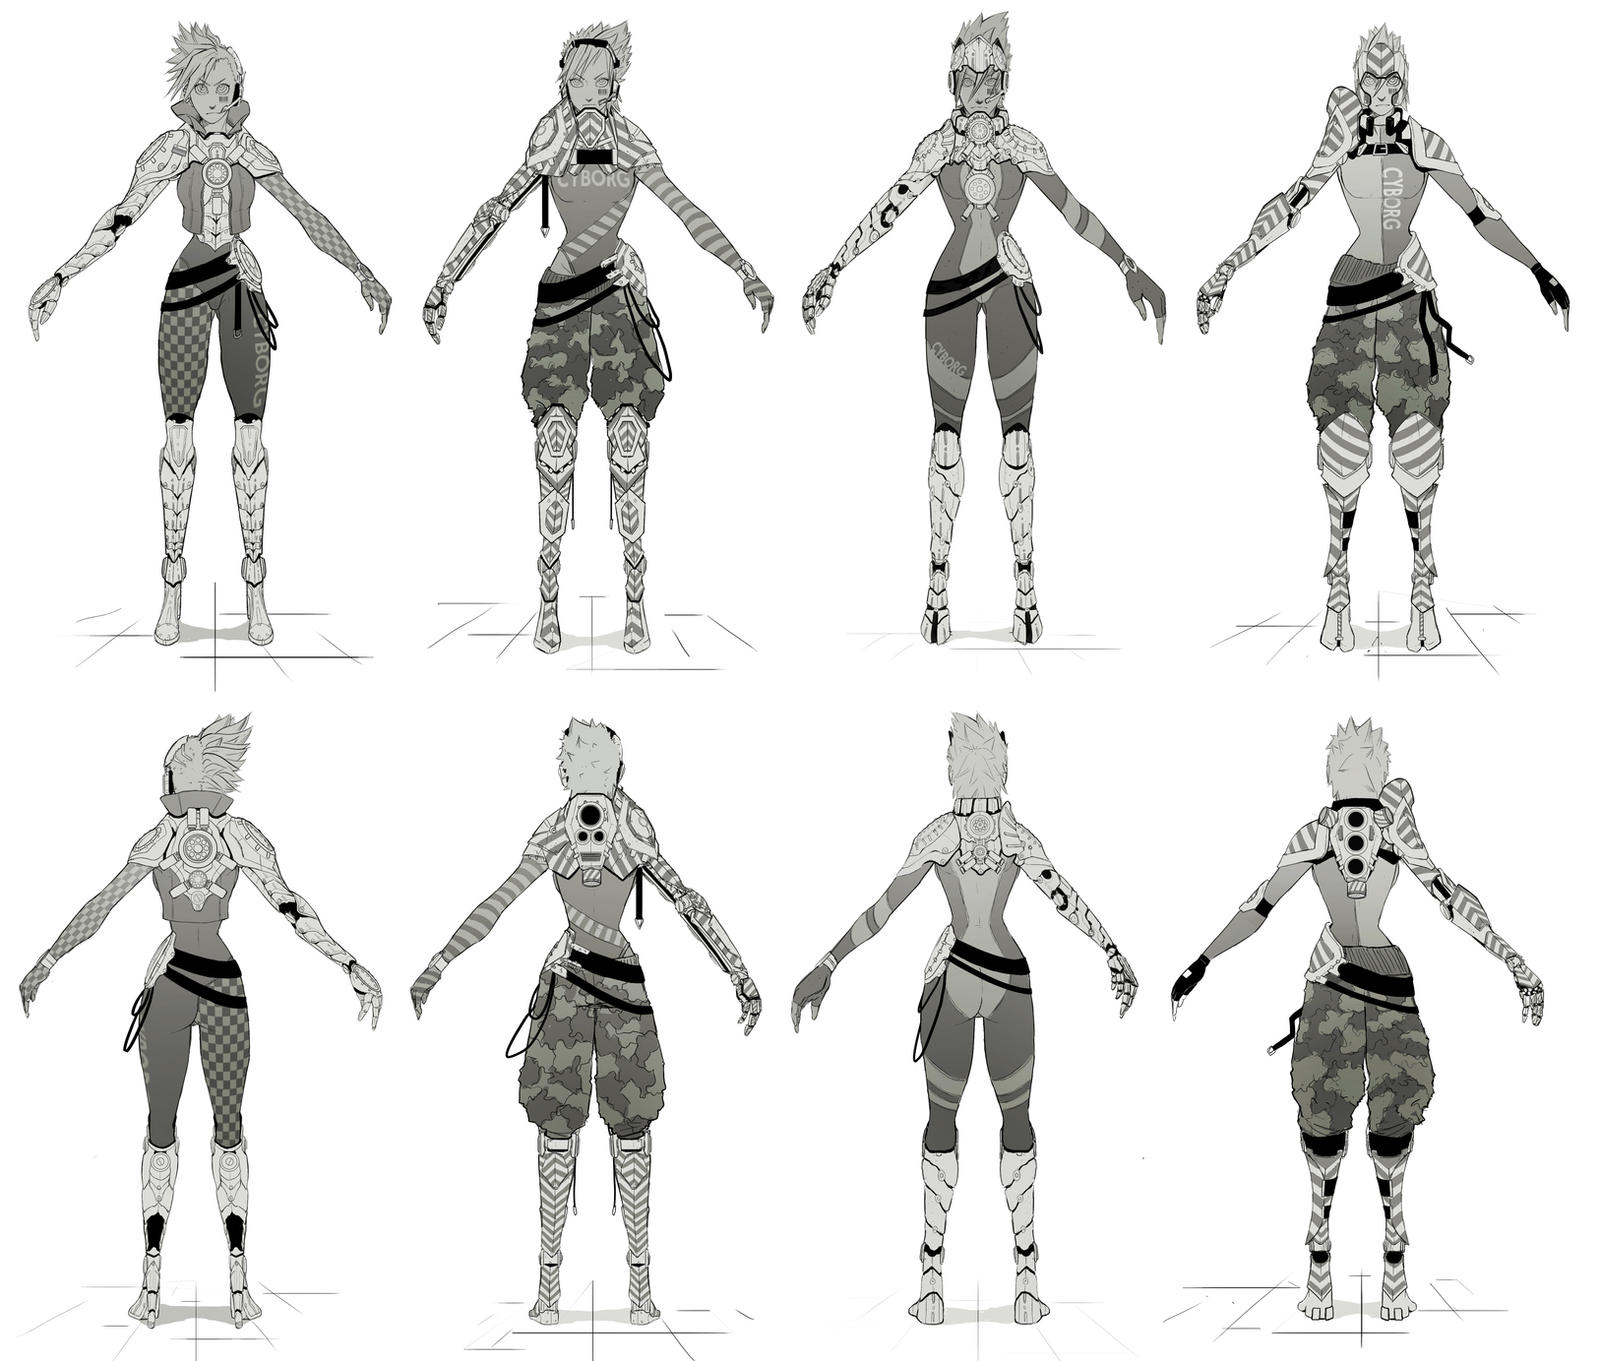 Single Line Character Art : Cyborg all character concept art line arts by sarlah on